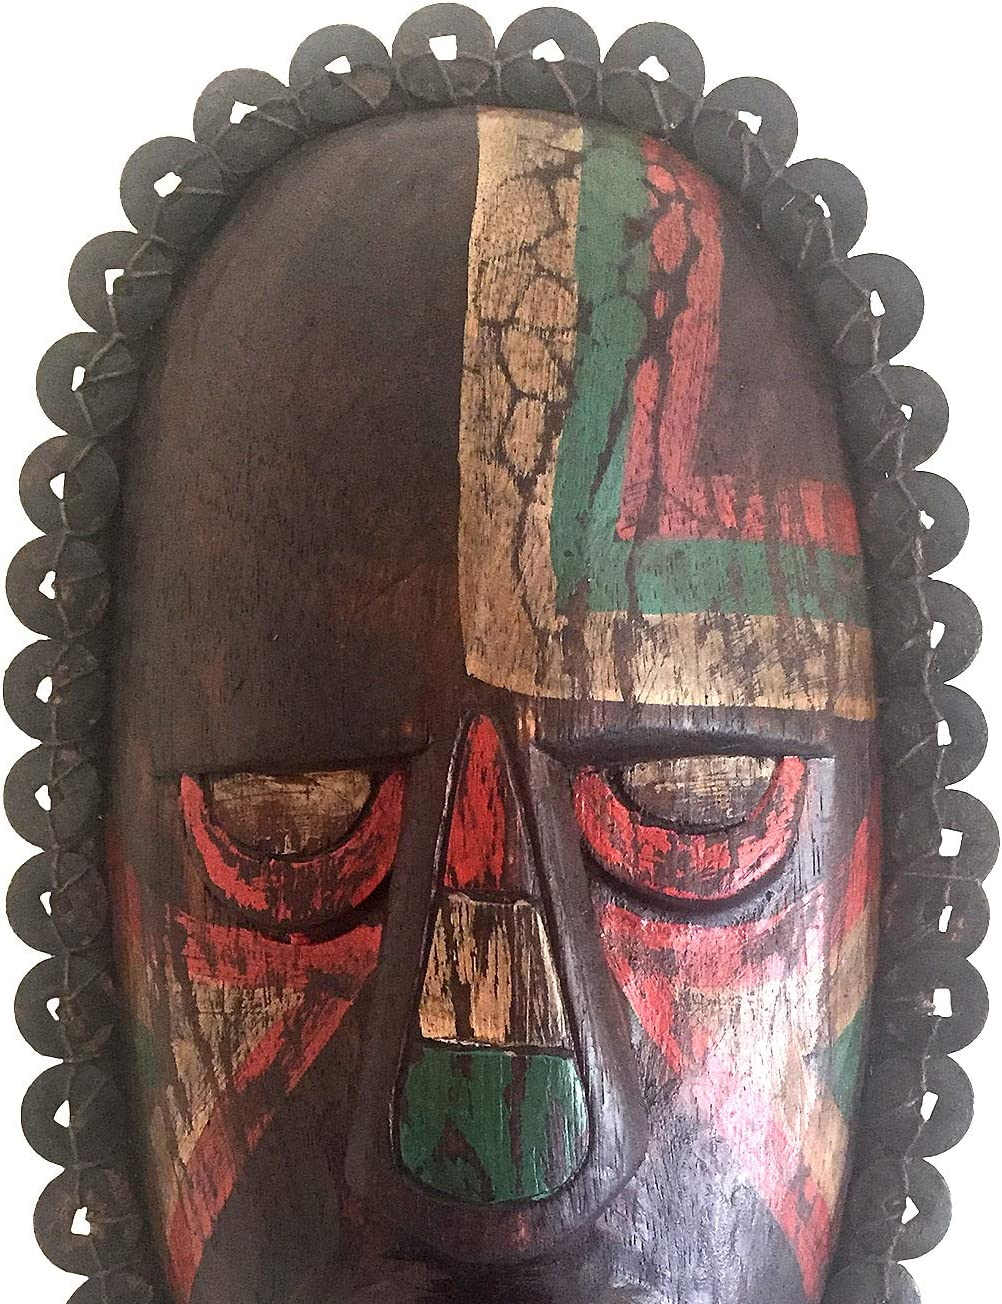 Oma Wood Carved African Mask Wall Hanging With Real Coins For Fortune Luck African Maori Home Decor Gift Multi Color Clothing Amazon Com